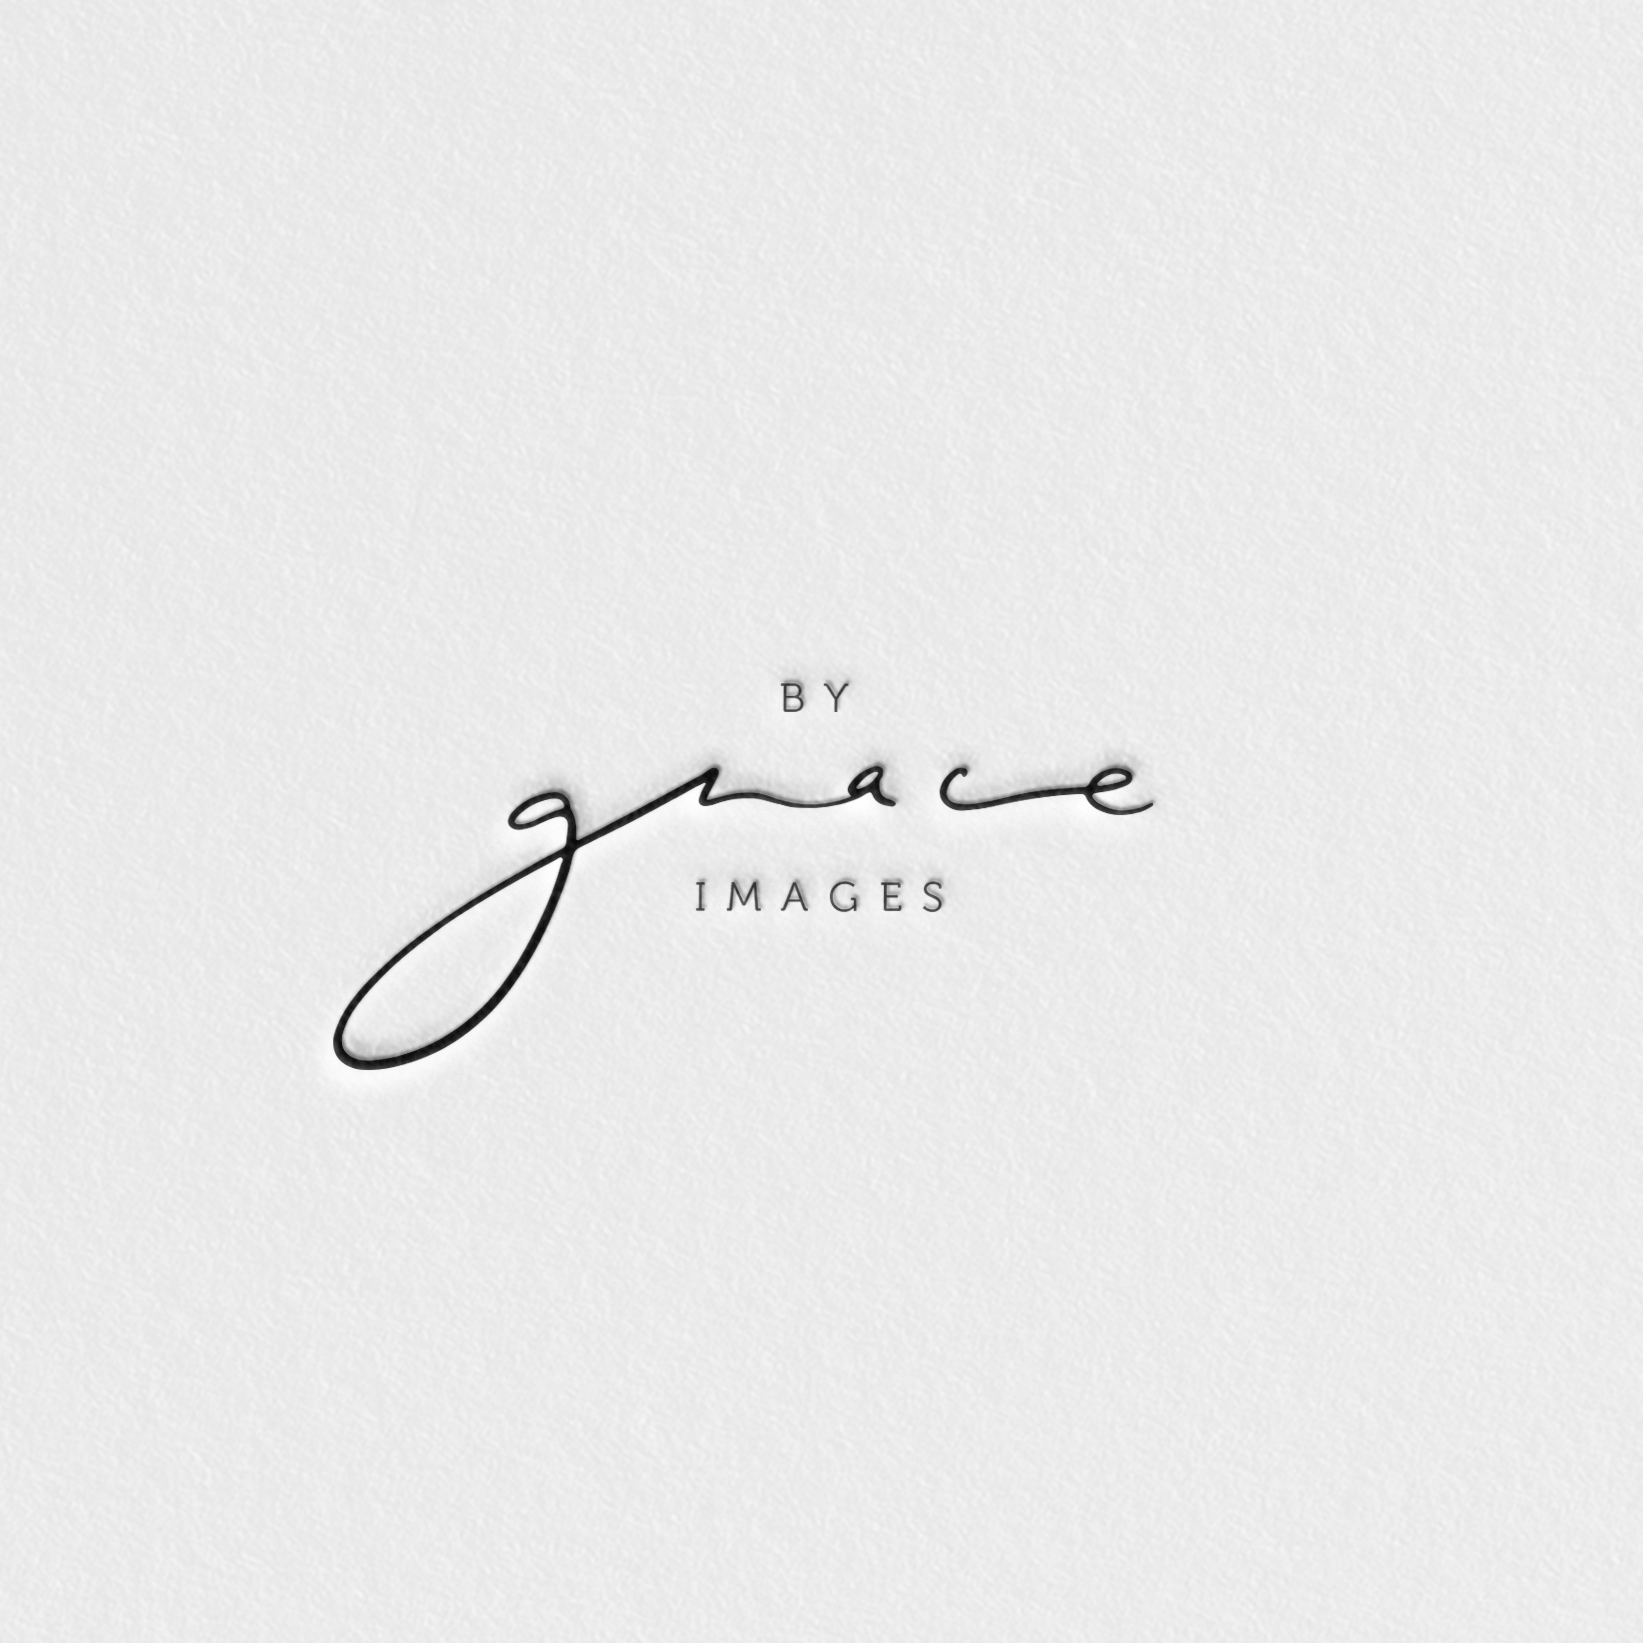 navy words by grace images printed on white paper